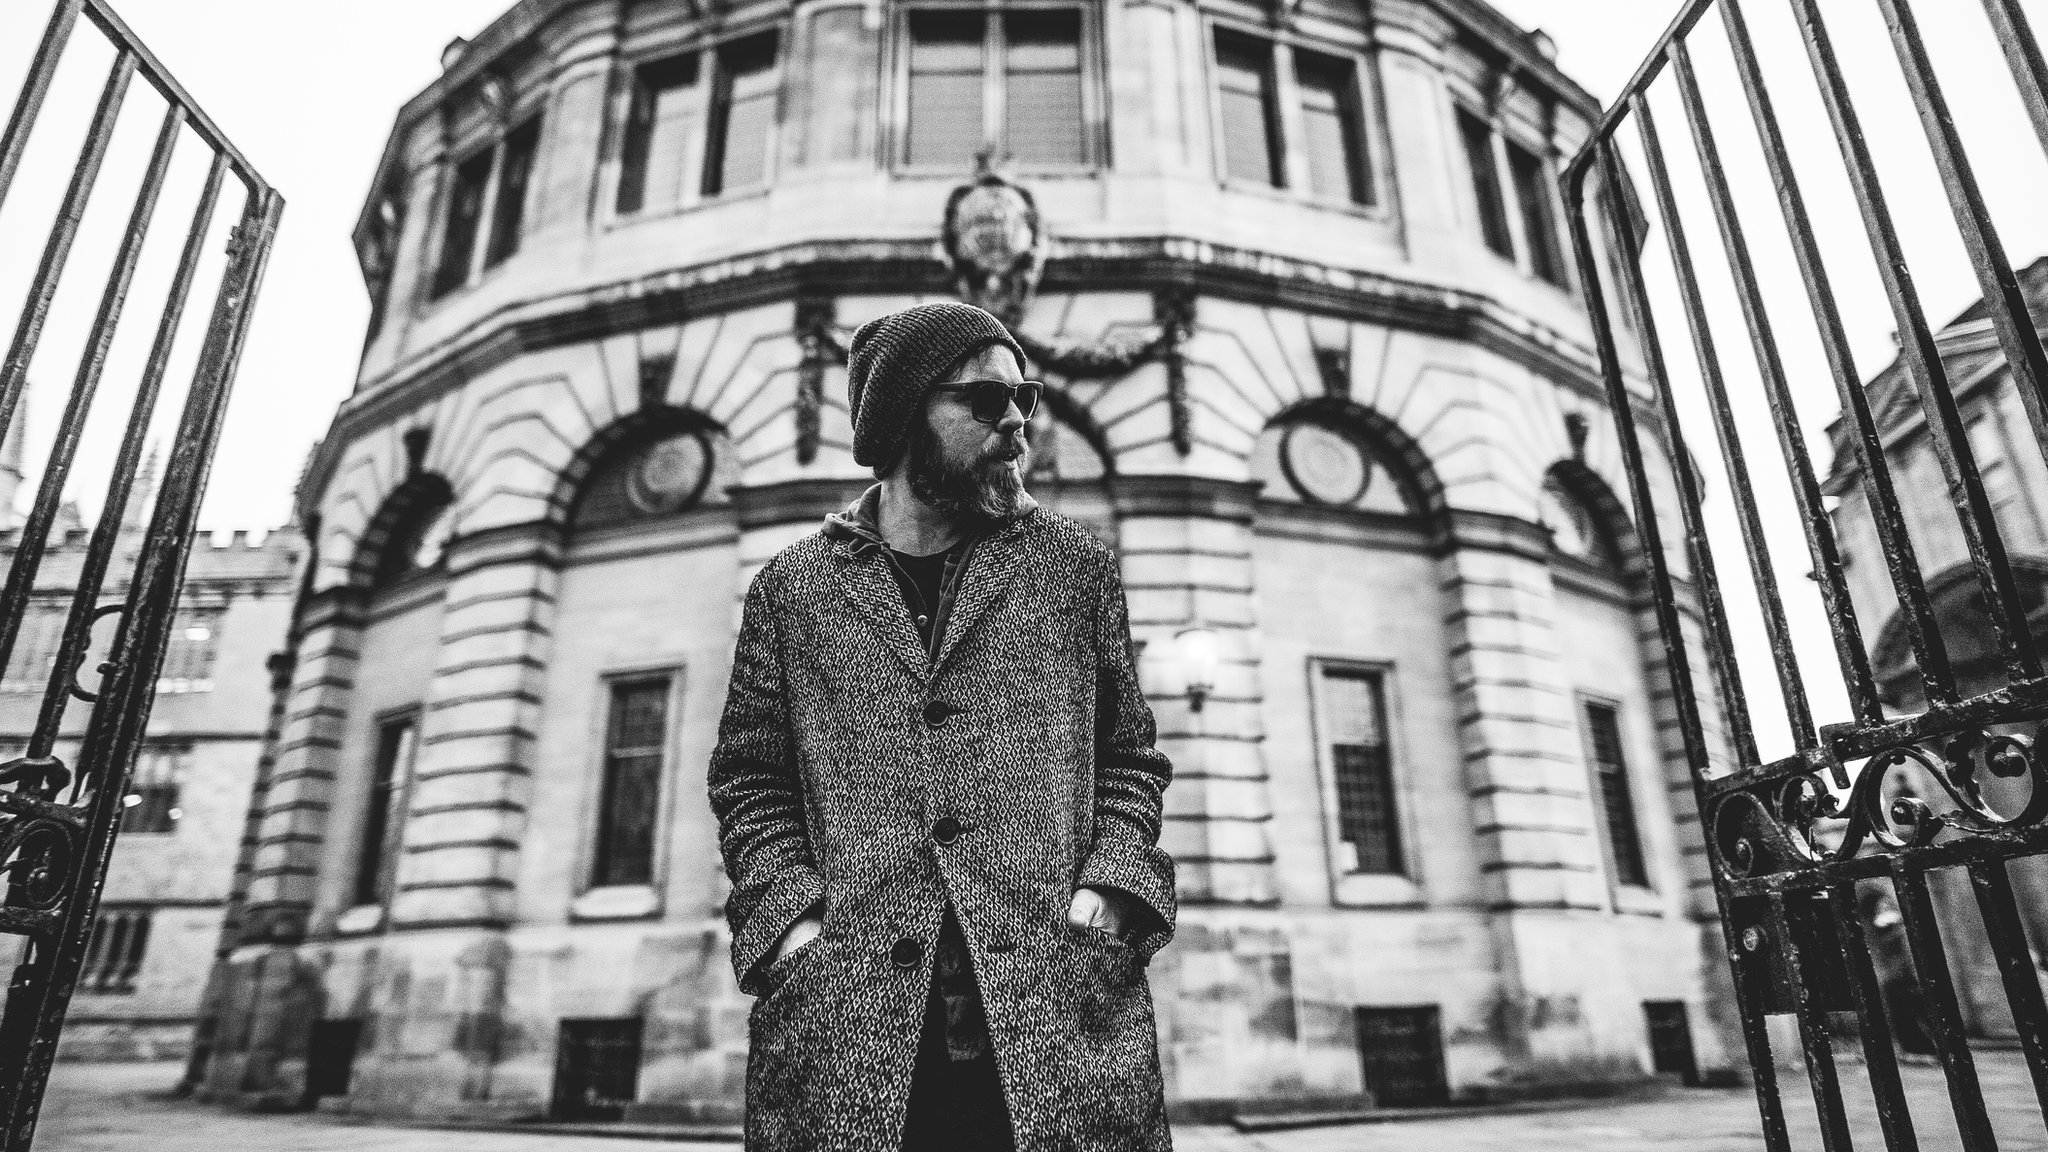 Gaz Coombes concert for Sheldonian Theatre's 350th birthday